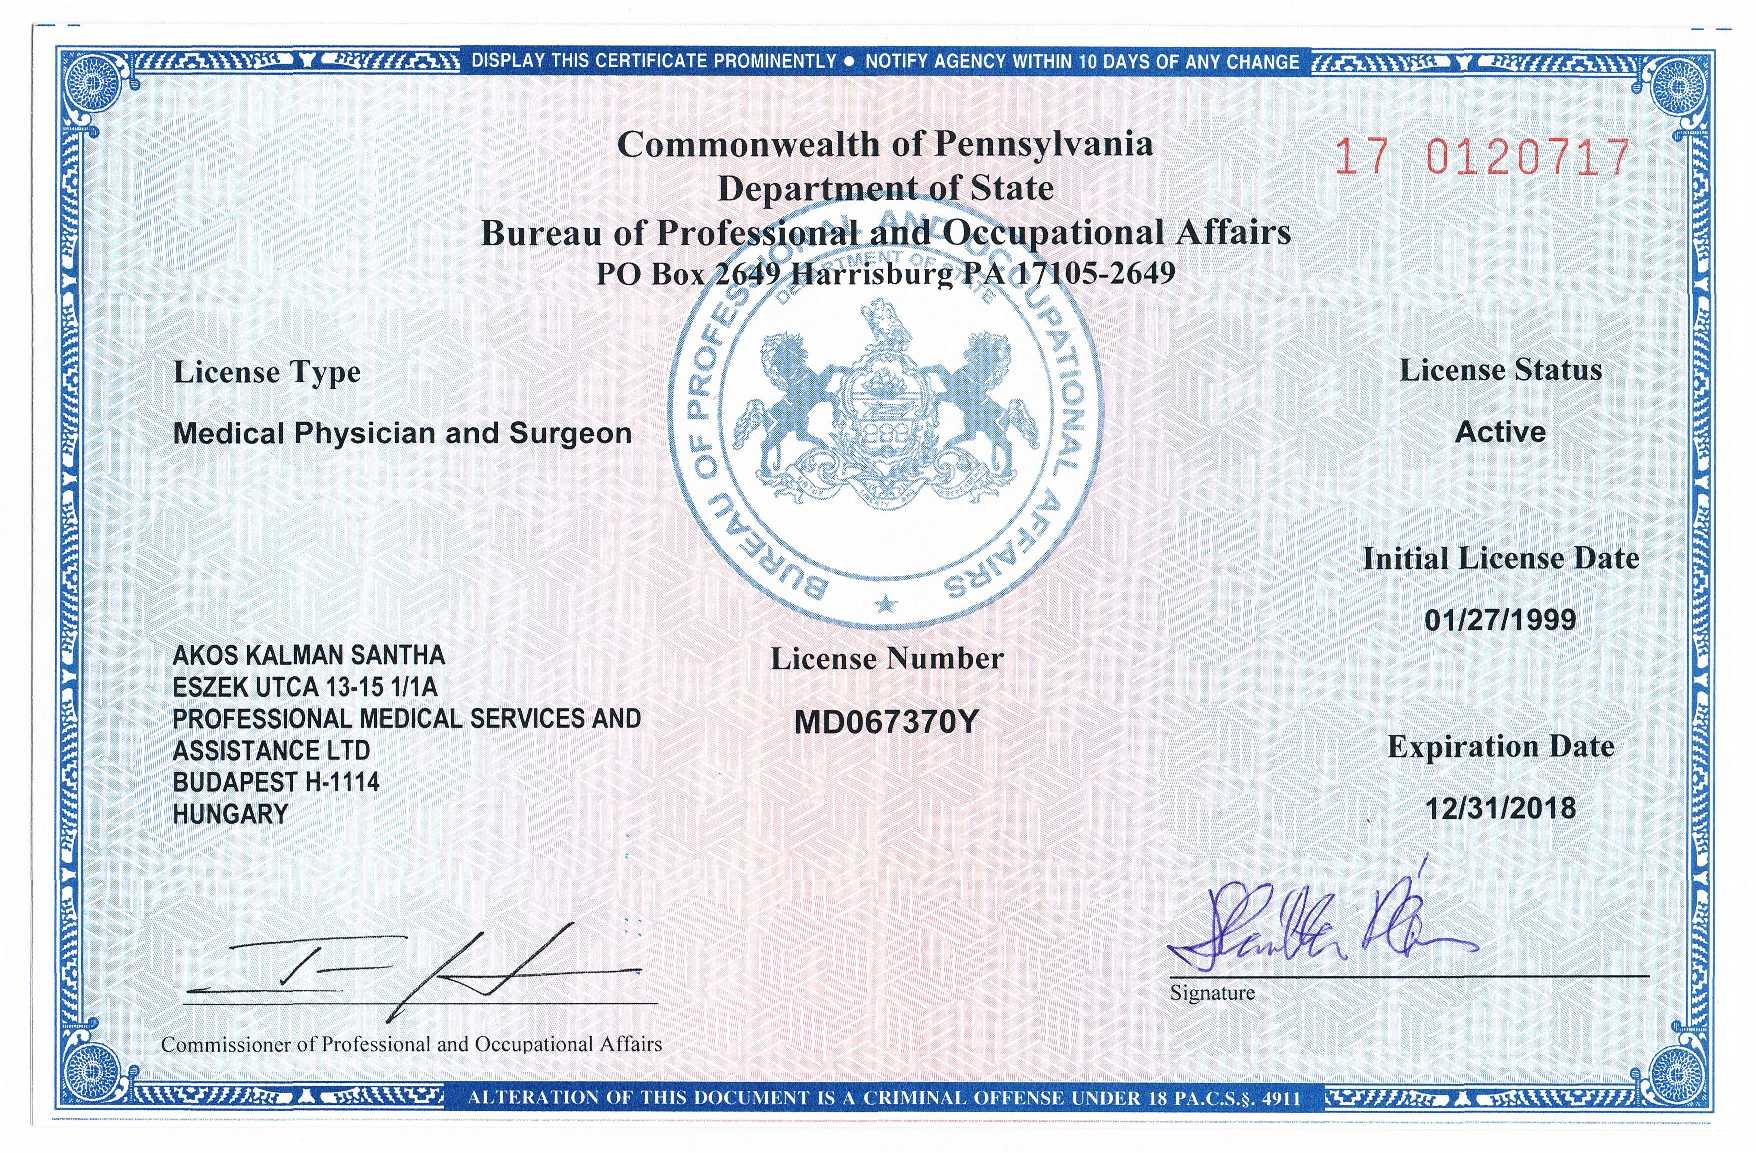 license medical pennsylvania verification commonwealth certifications dr board licenses certified physicians licensed hungary